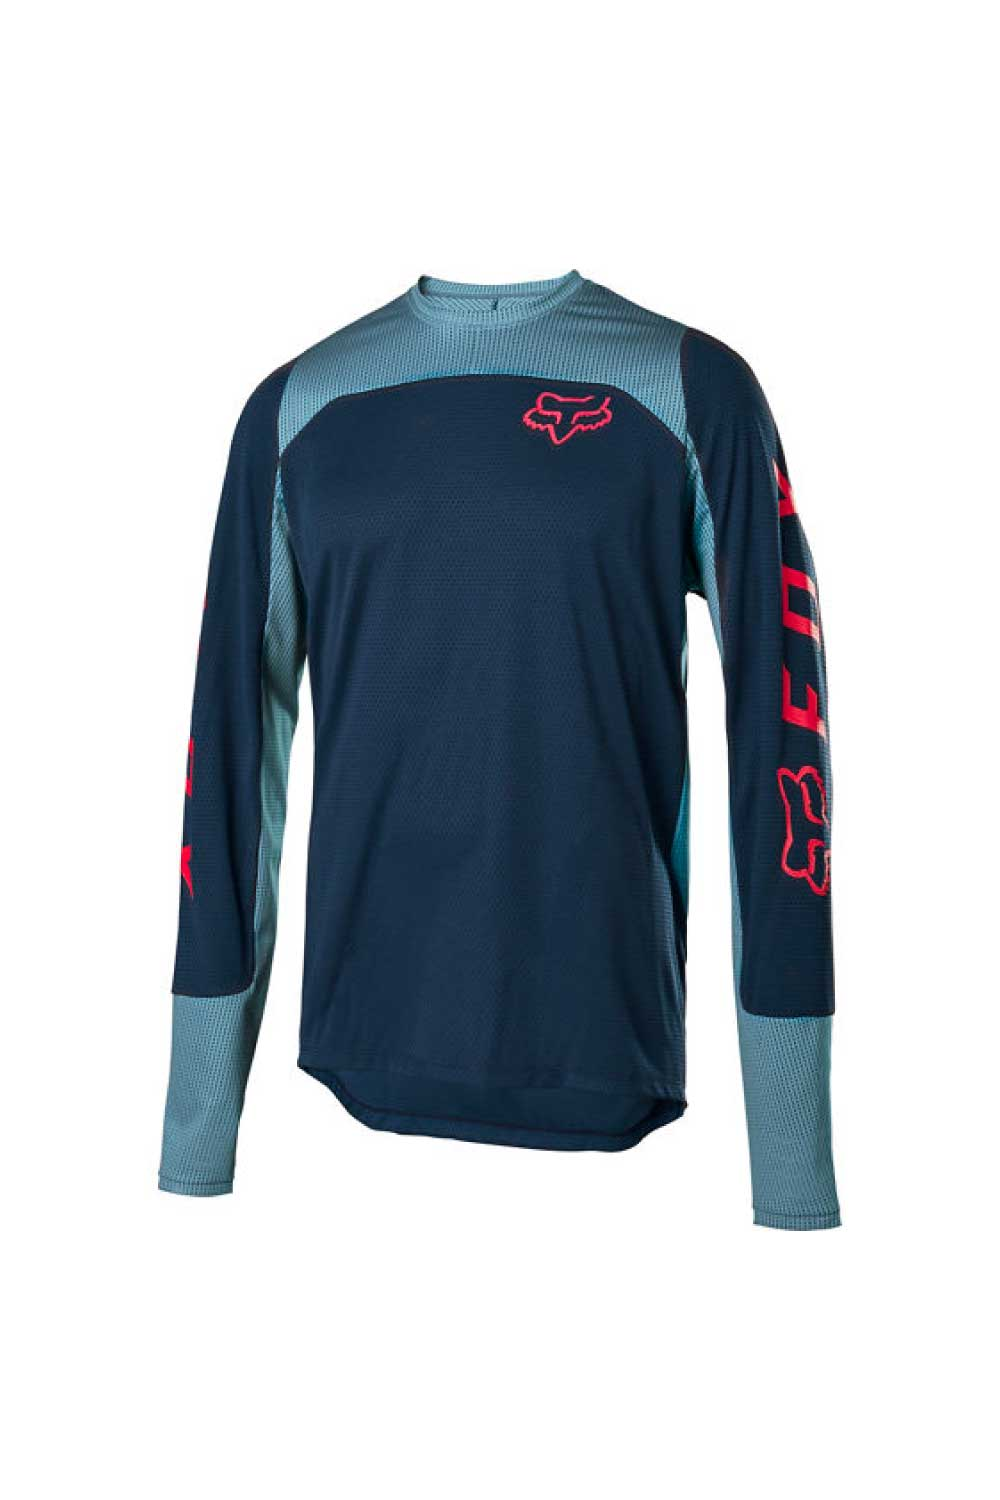 FOX Racing 2020 Defend Long Sleeve MTB Bike Jersey